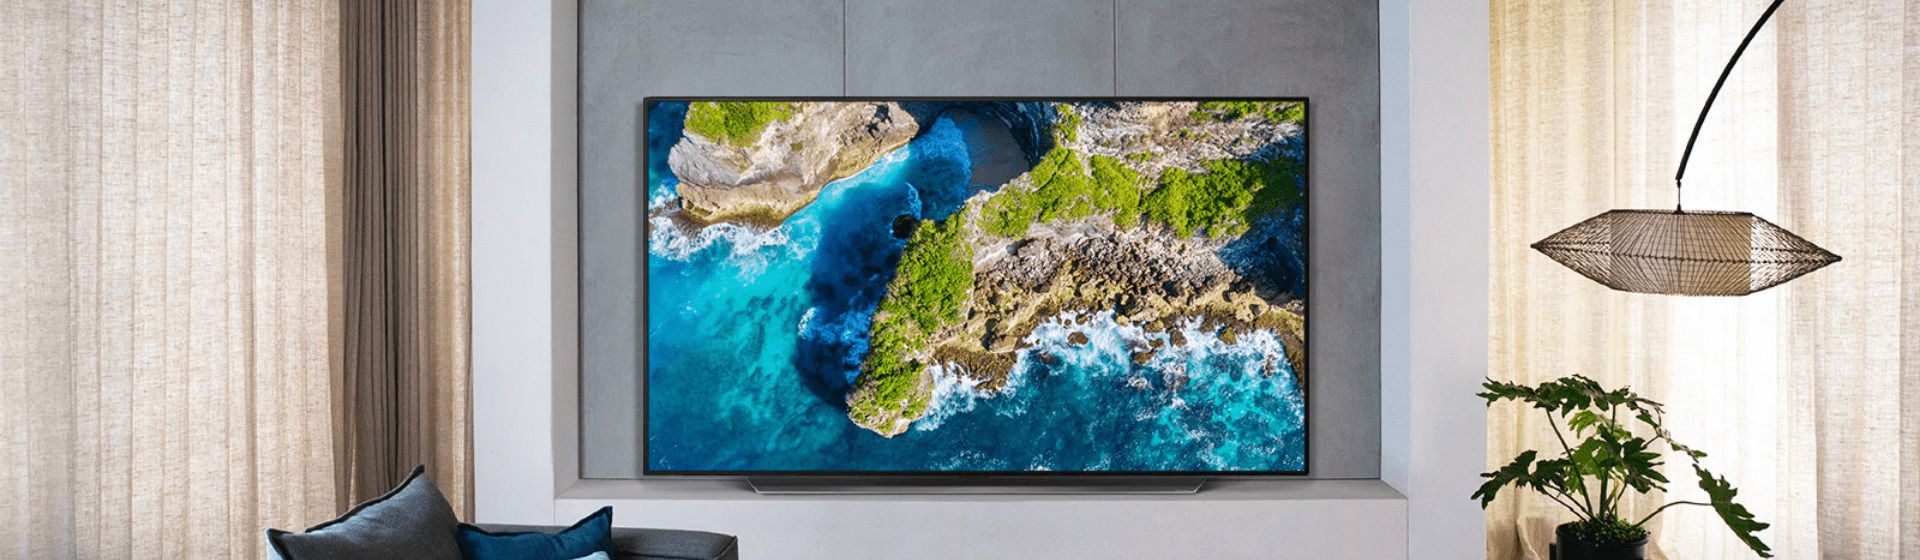 Smart TV LG ThinQ AI OLED CX é boa?